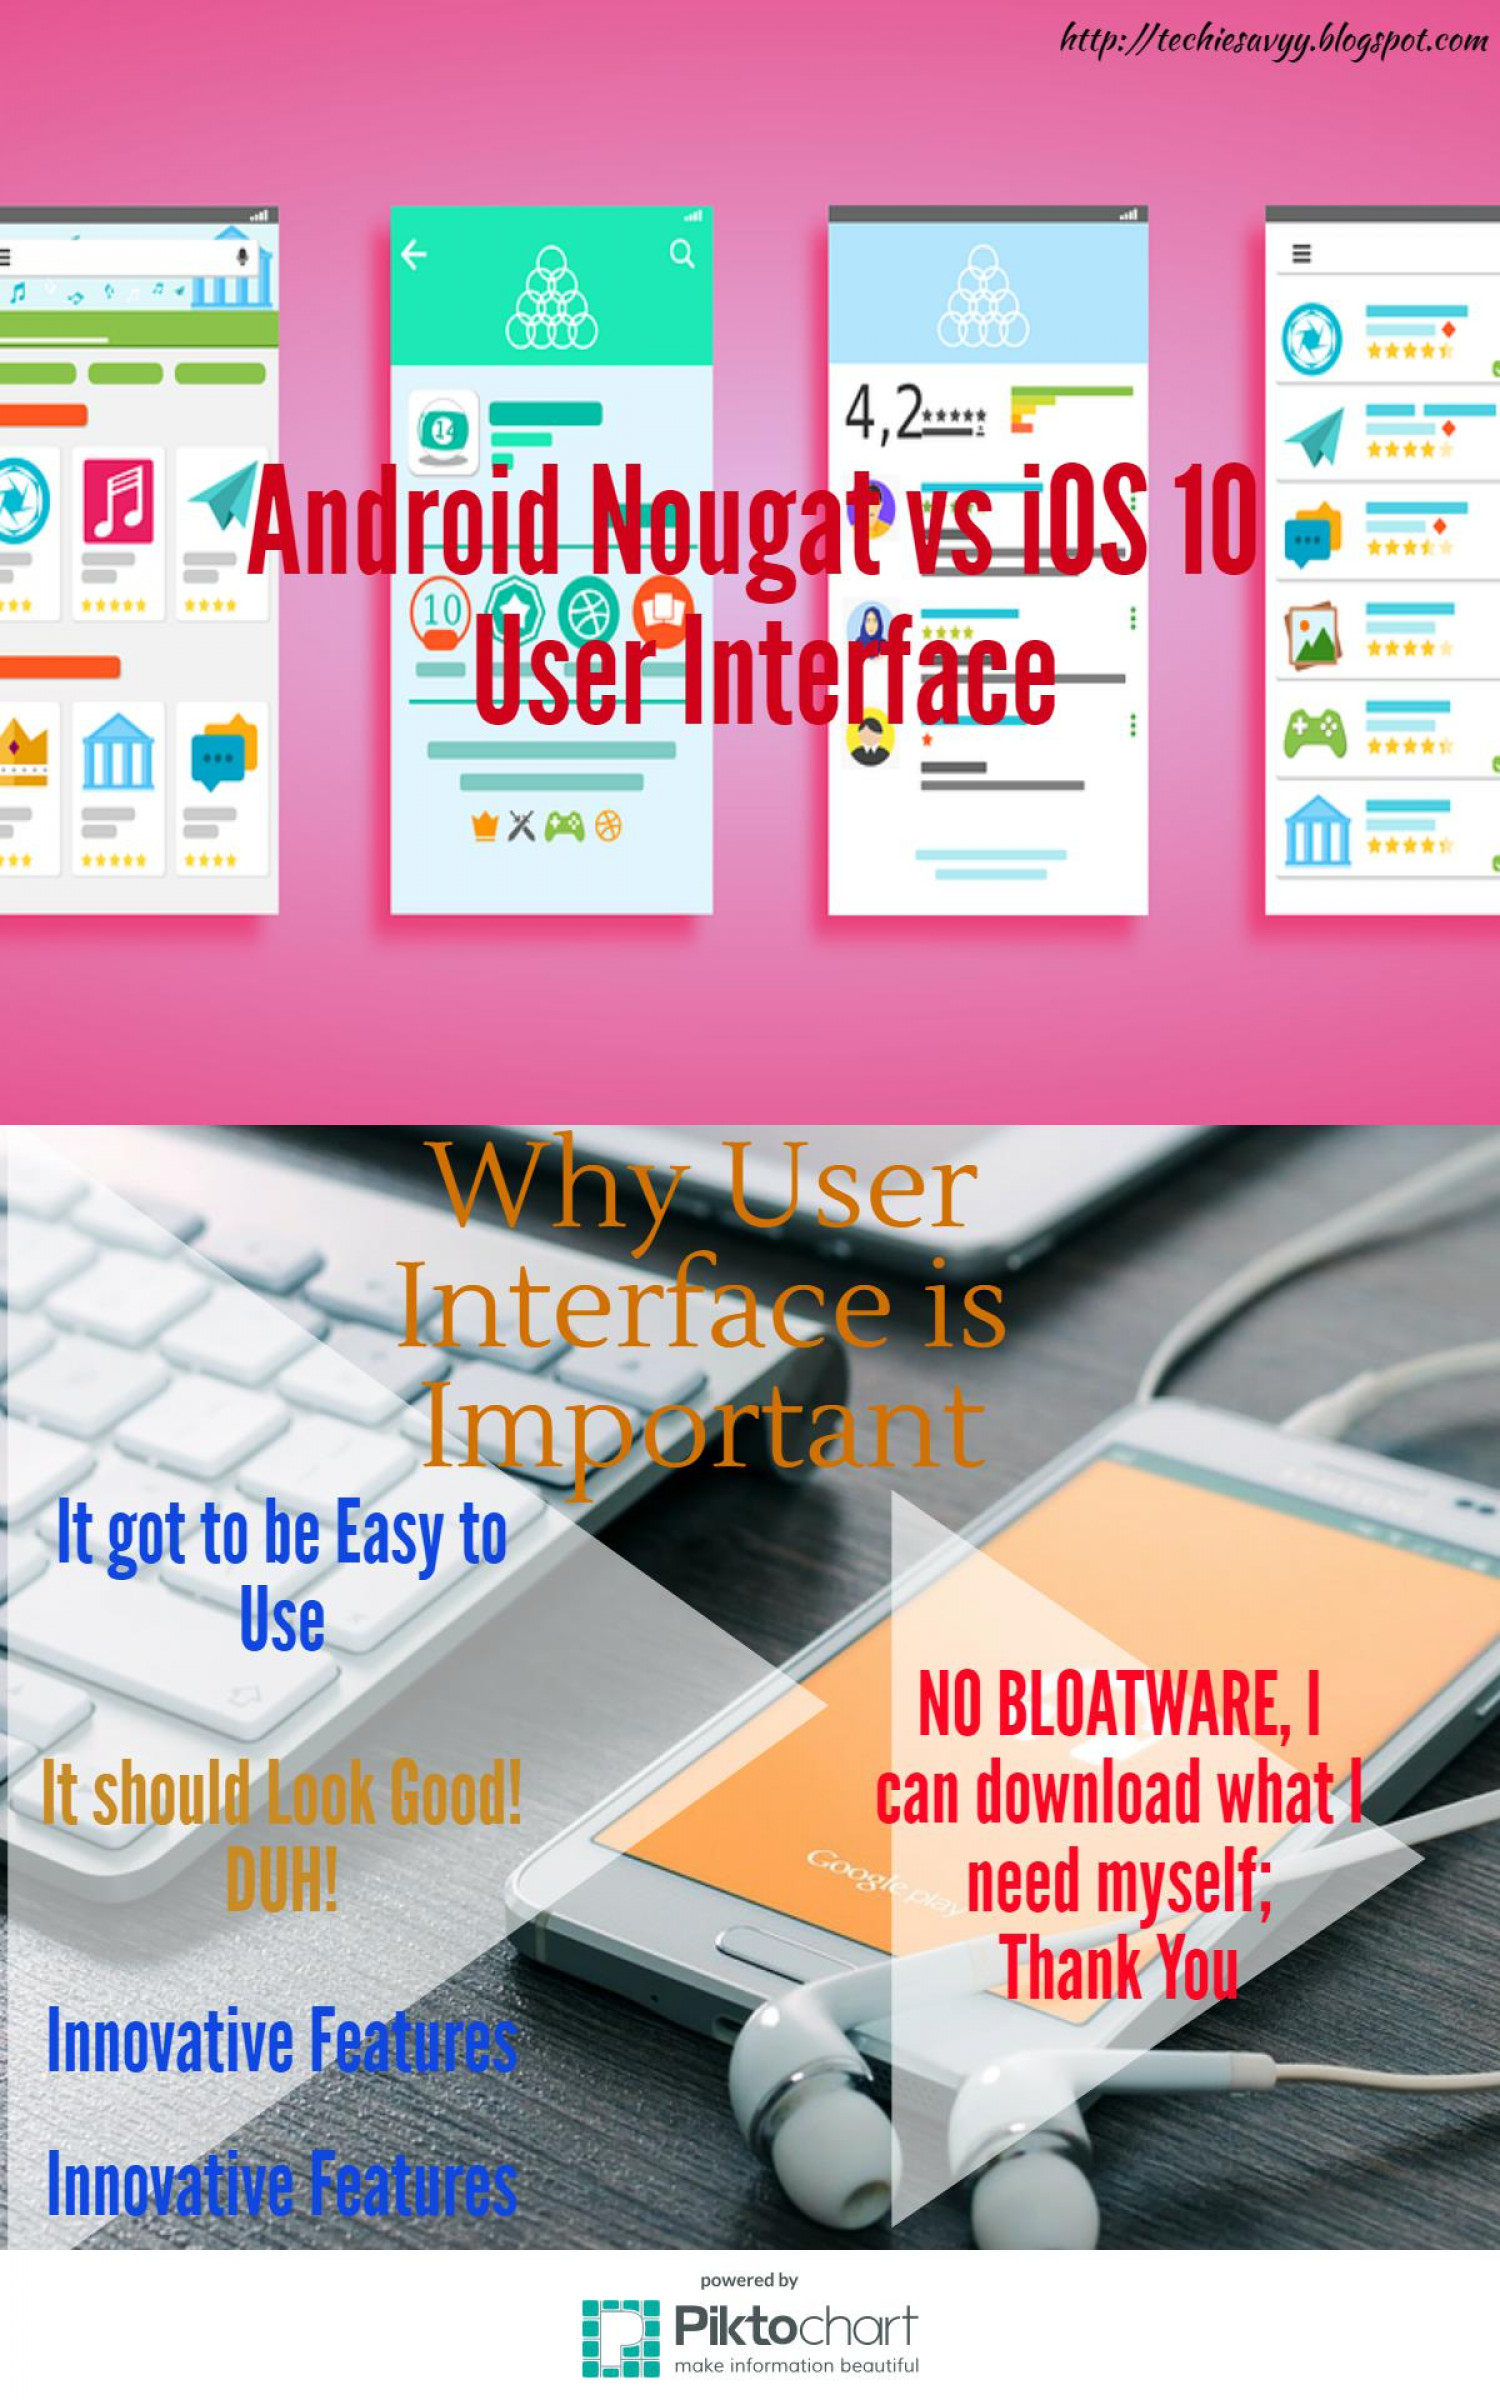 iOS 10 vs Android Nougat: Importance of User Interface Infographic